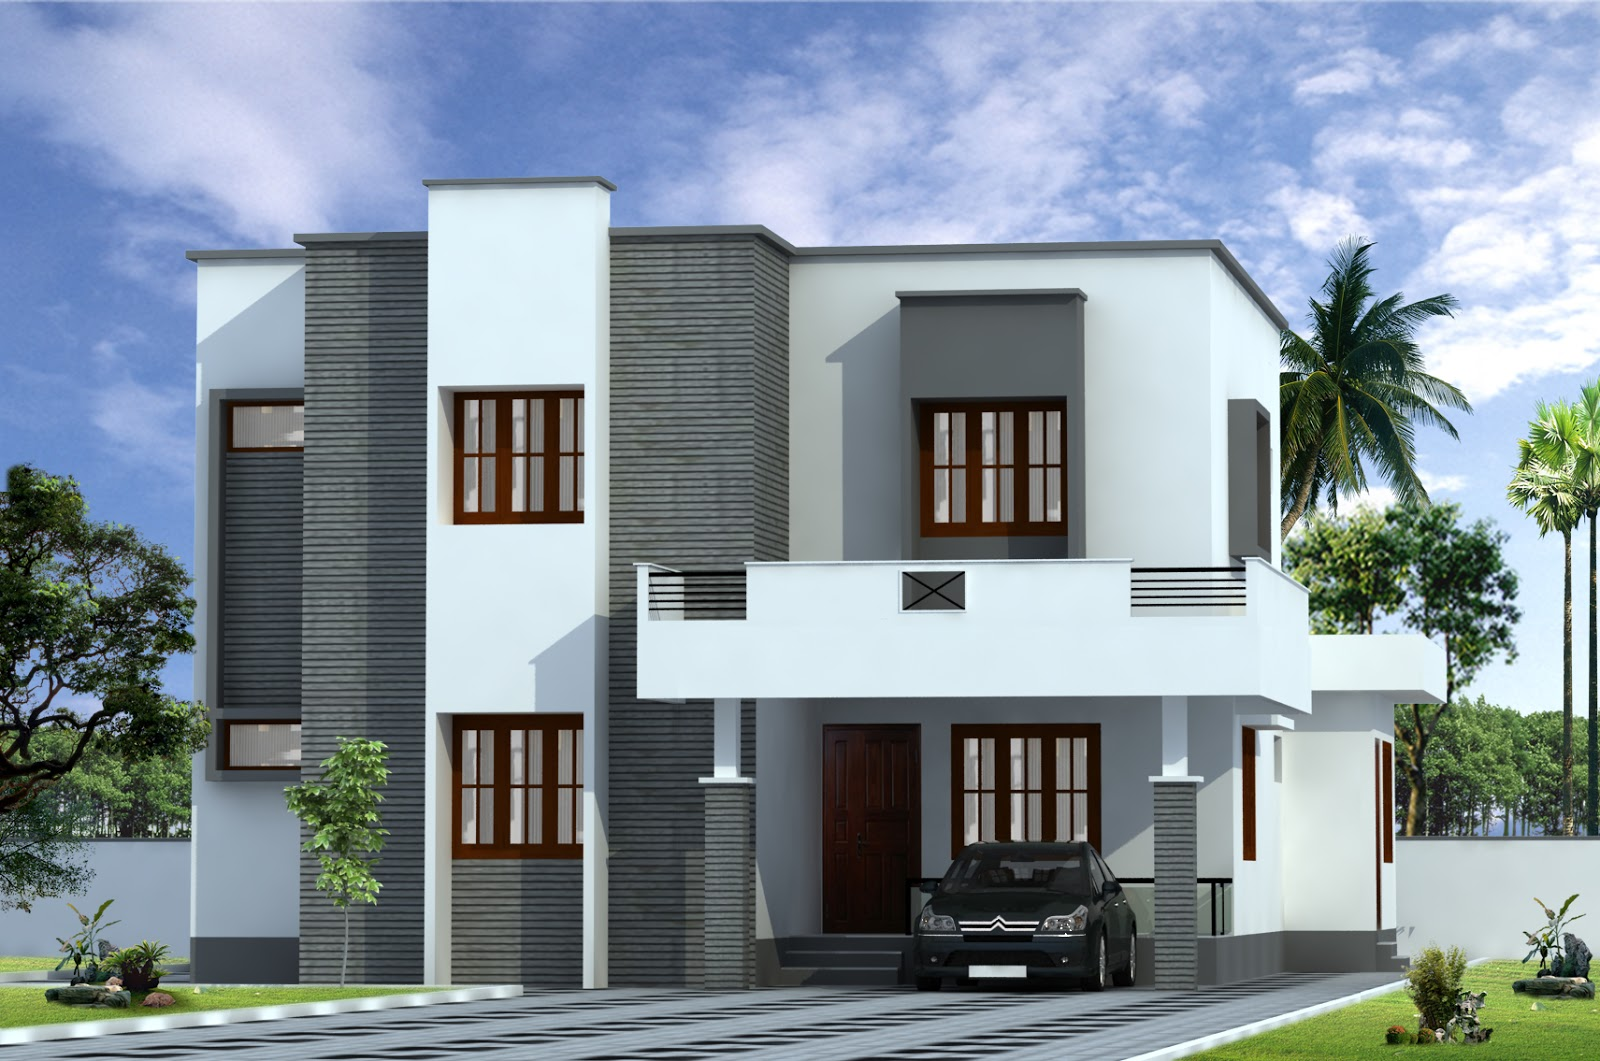 Build a building house designs for Architecture design a house